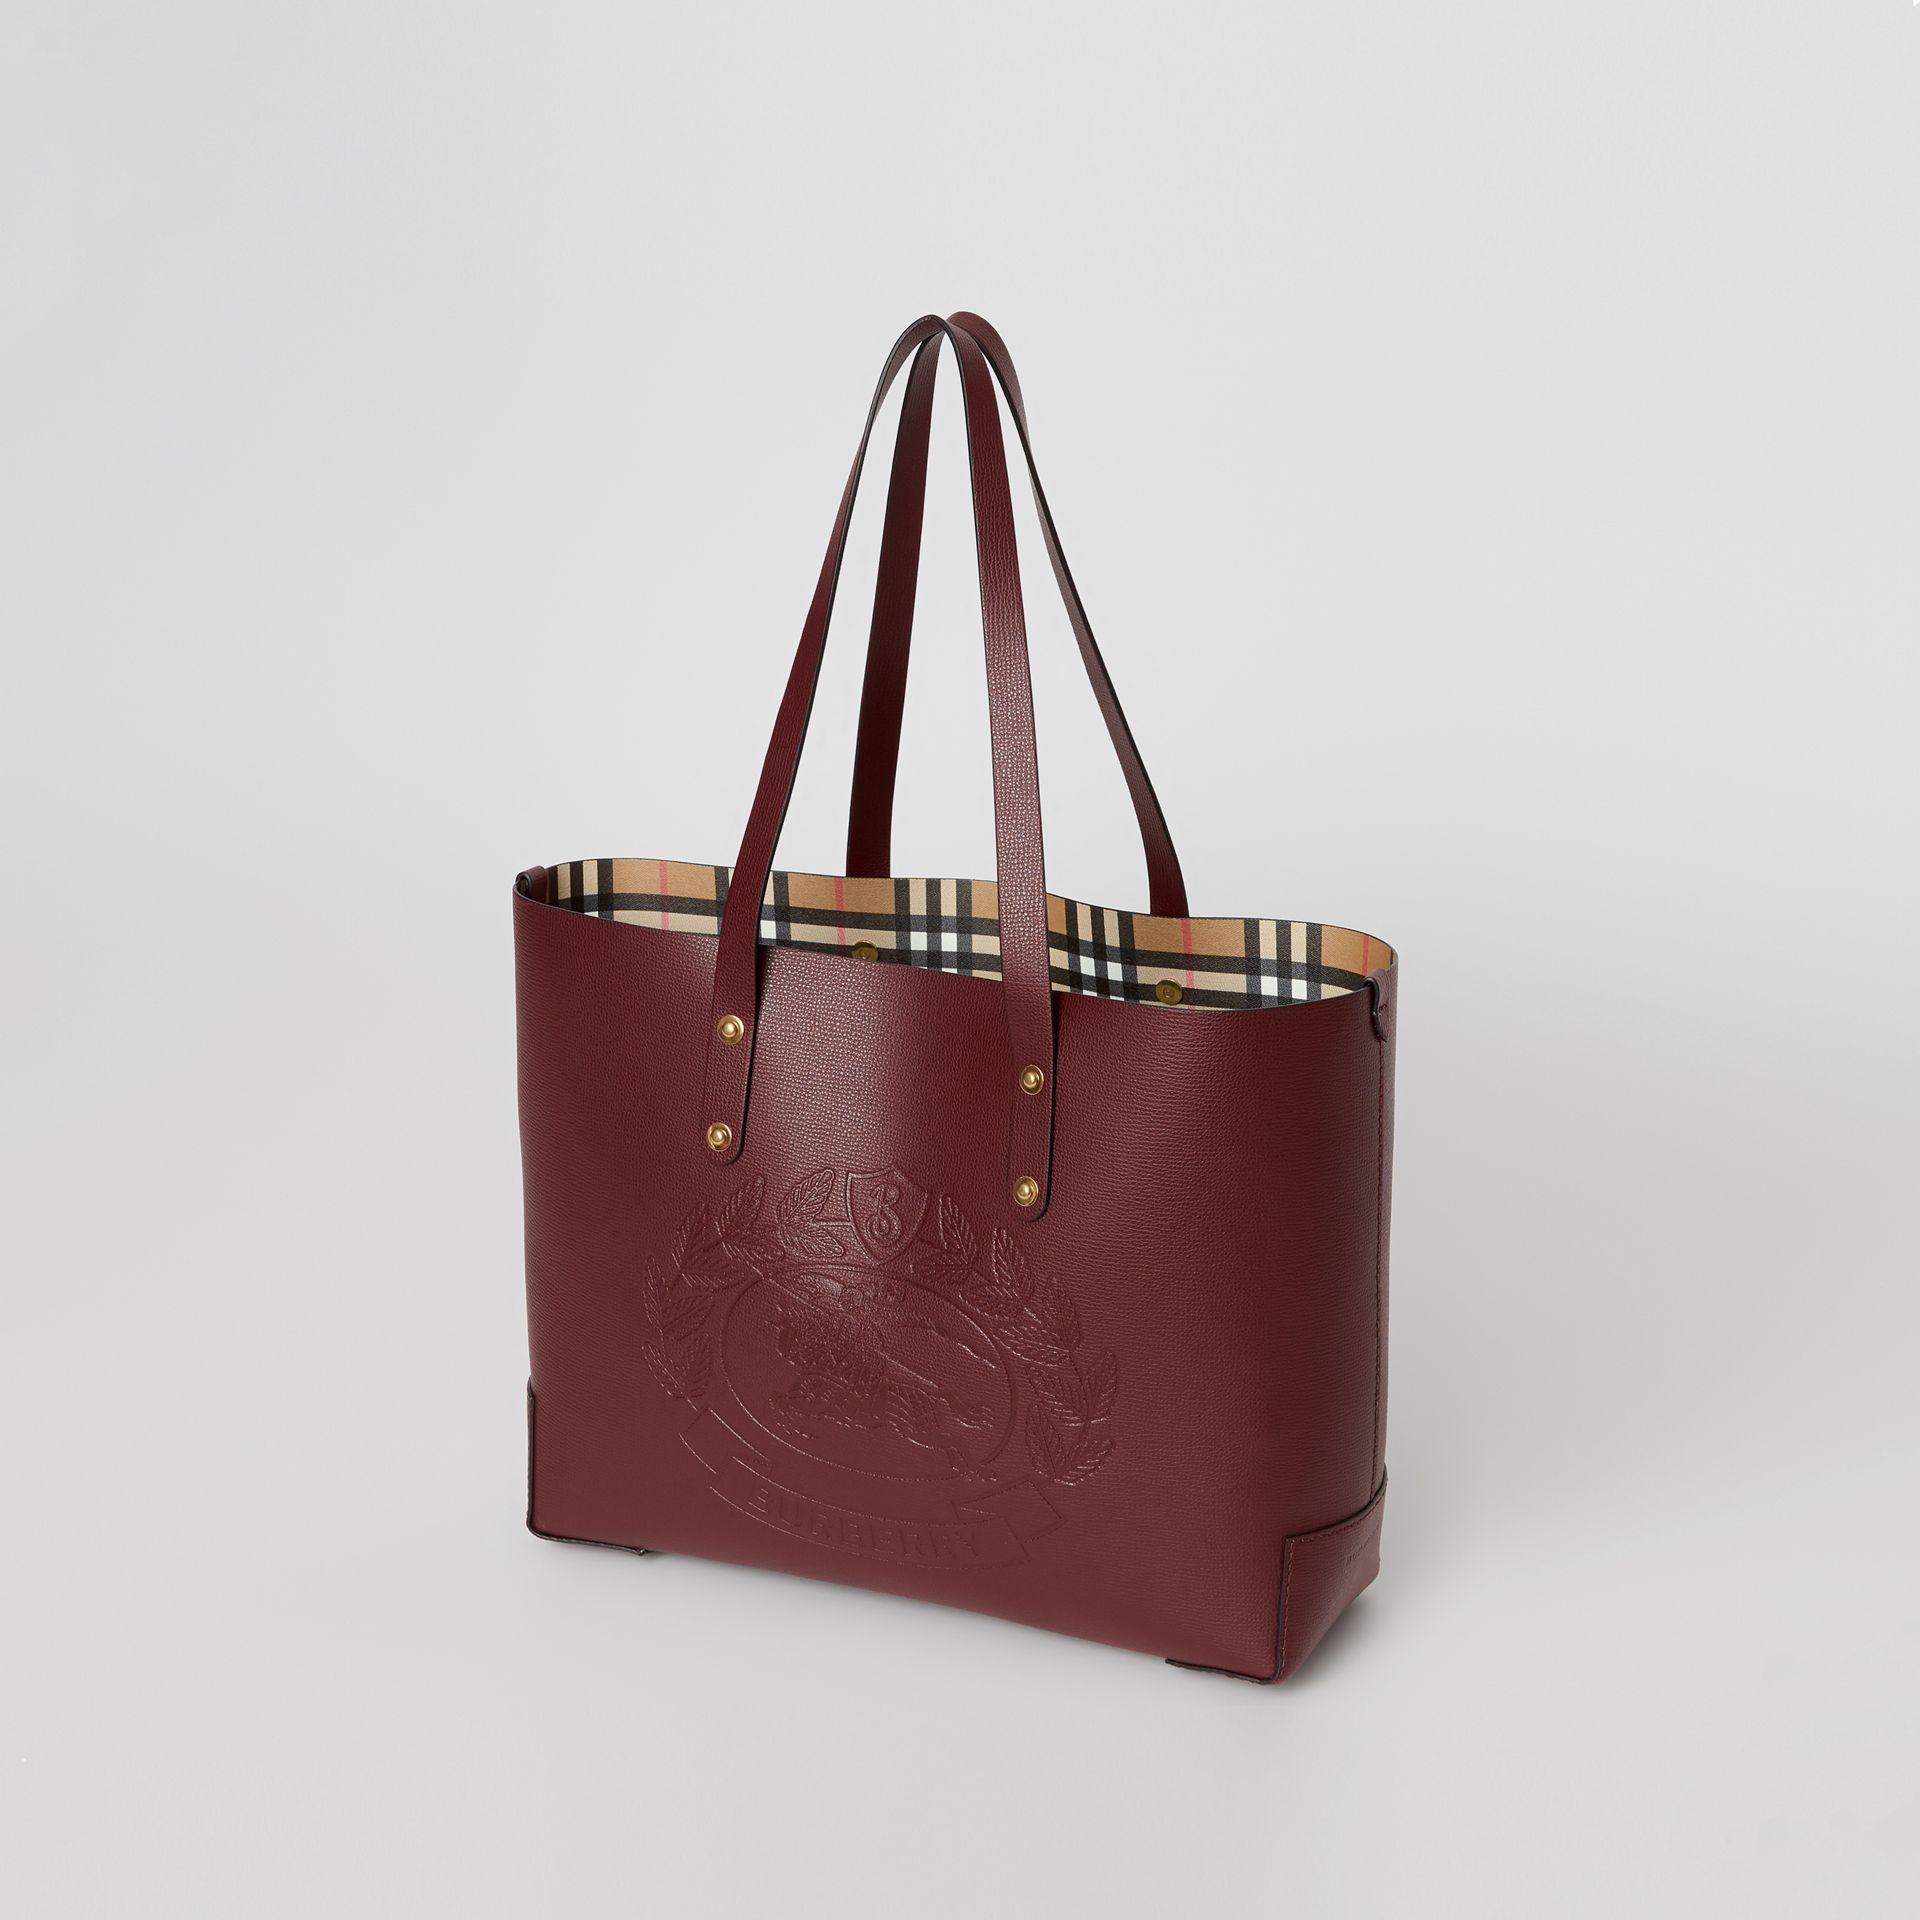 Small Embossed Crest Leather Tote in Burgundy | Burberry - gallery image 5